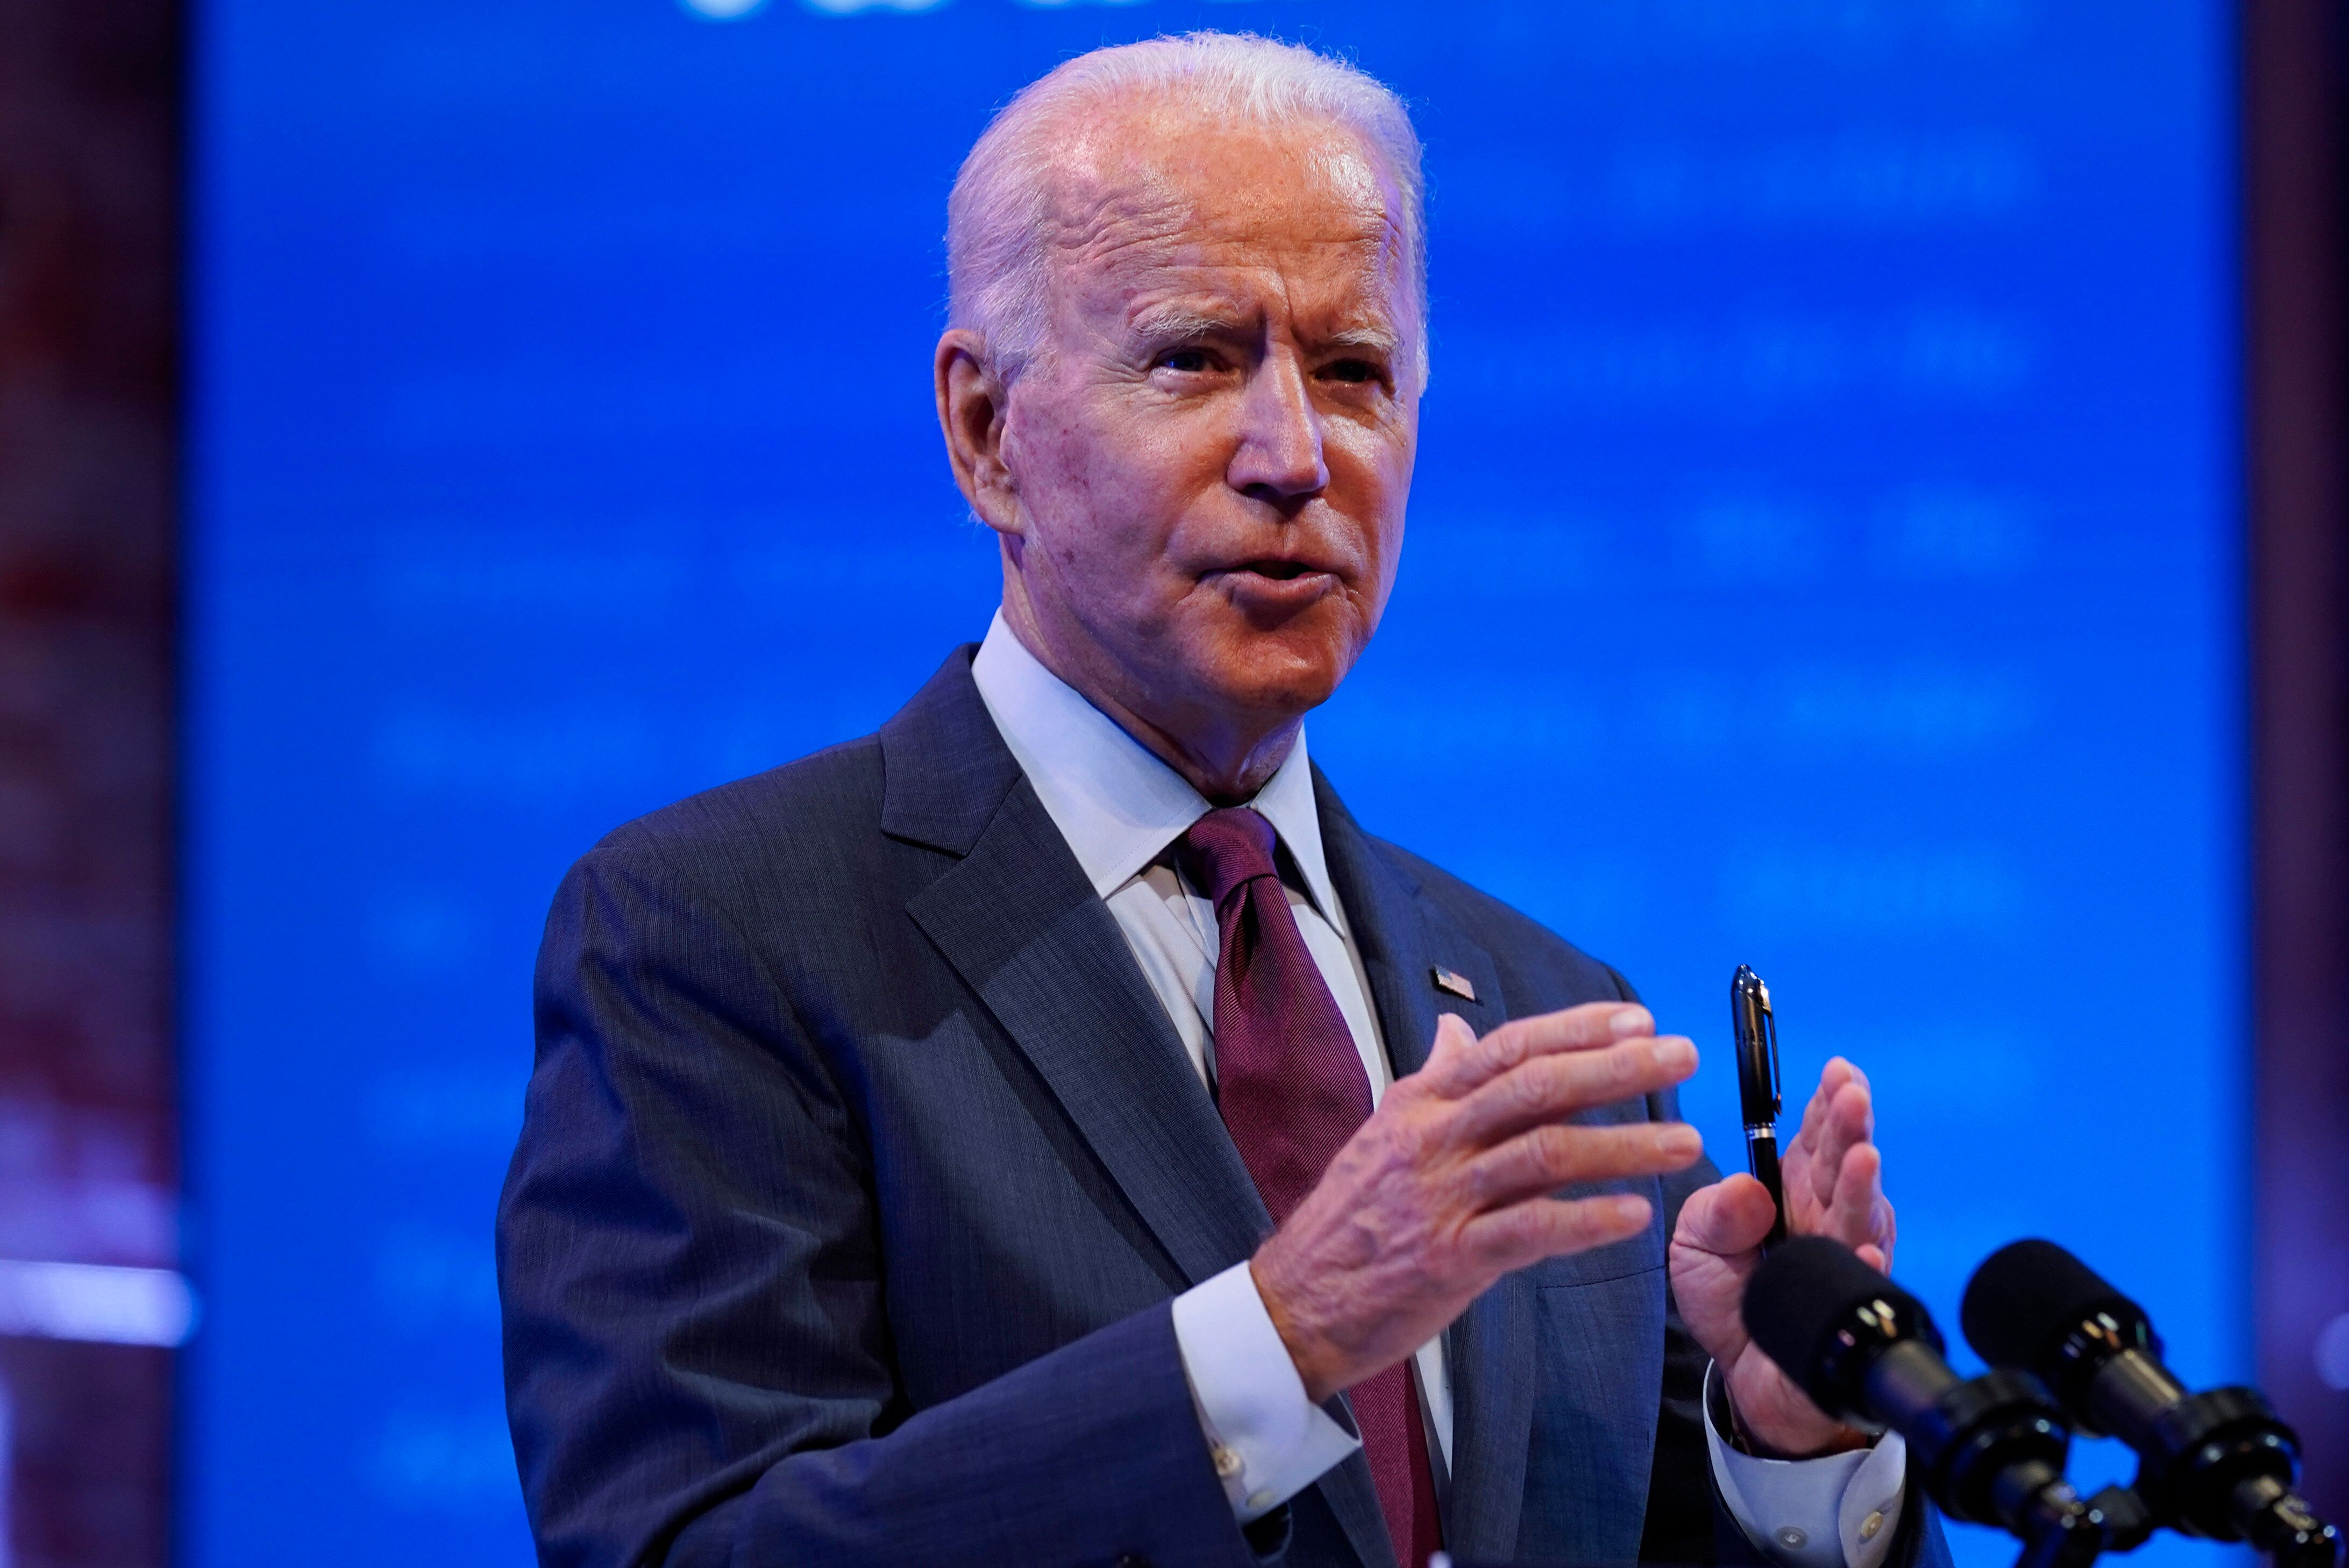 Democratic presidential candidate Joe Biden gives a speech Sunday in Wilmington, Delaware.